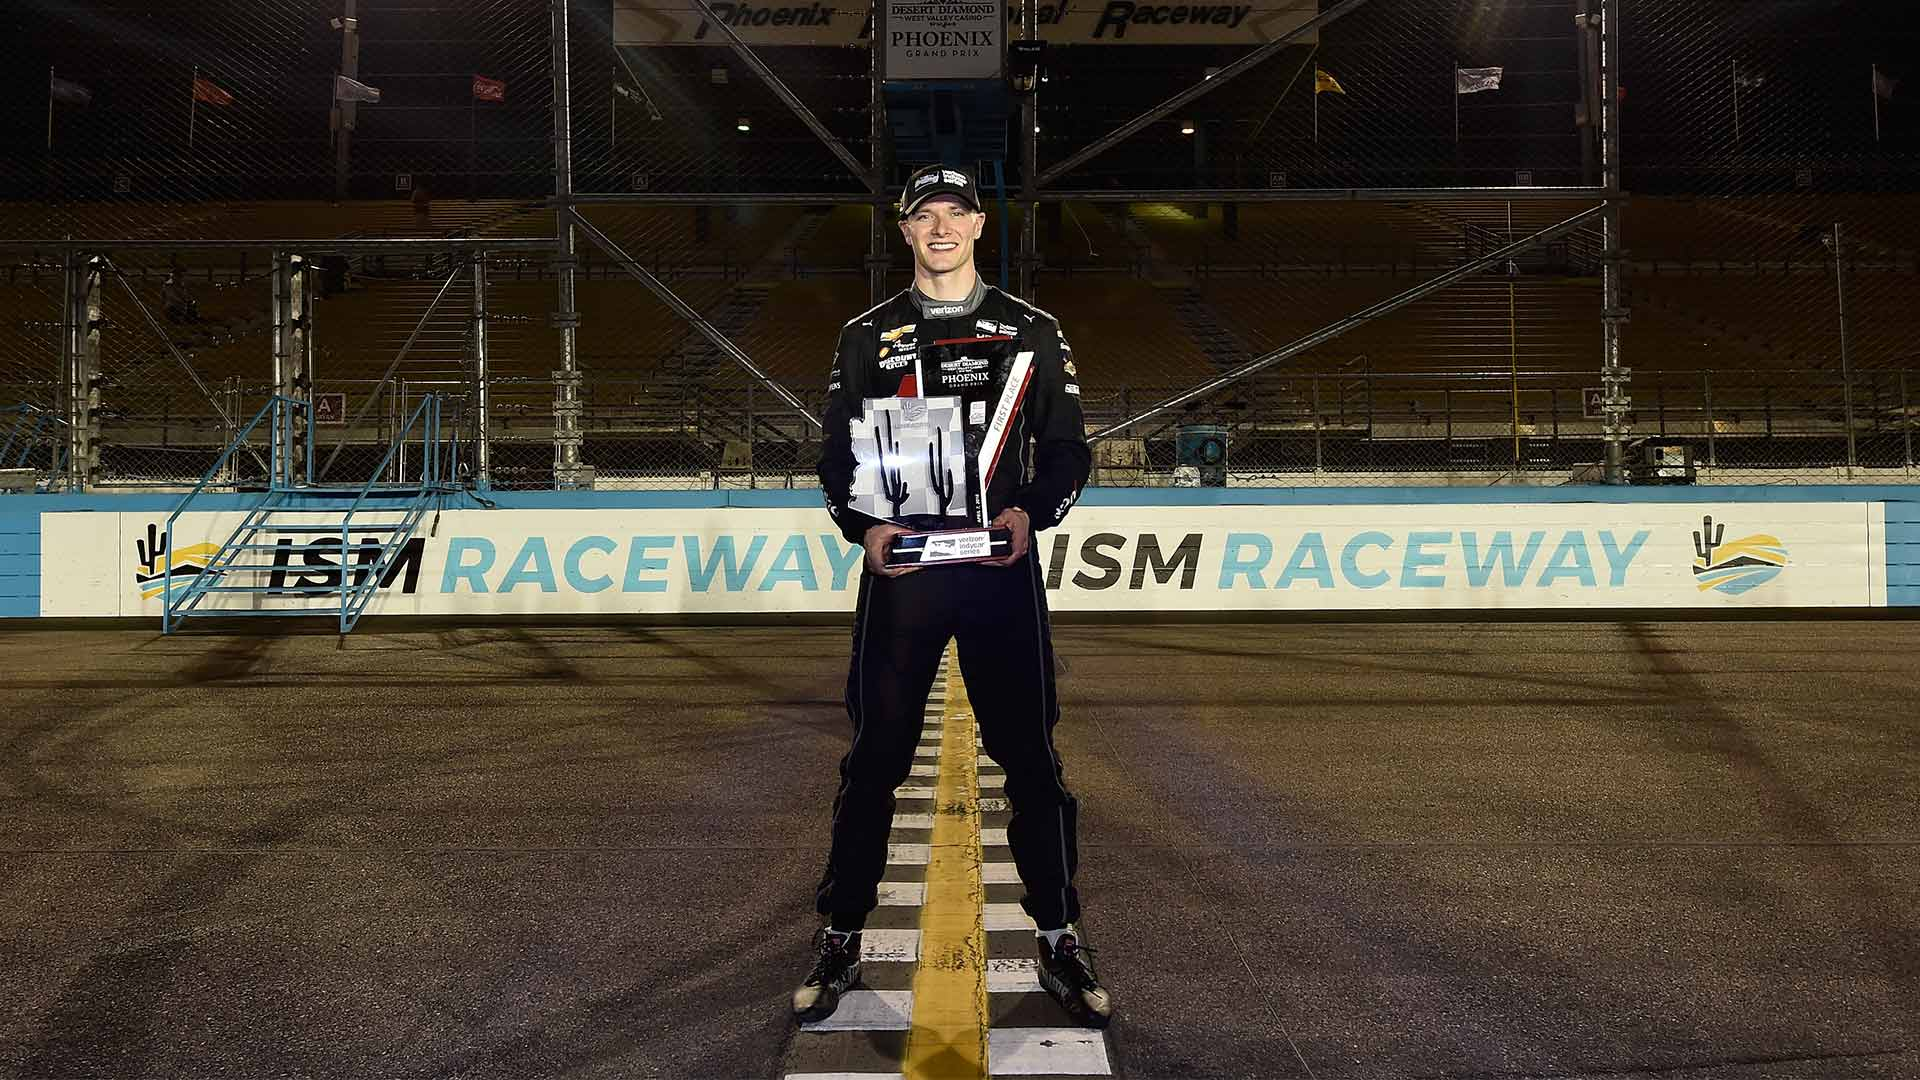 Josef Newgarden stands over the start/finish line with his trophy